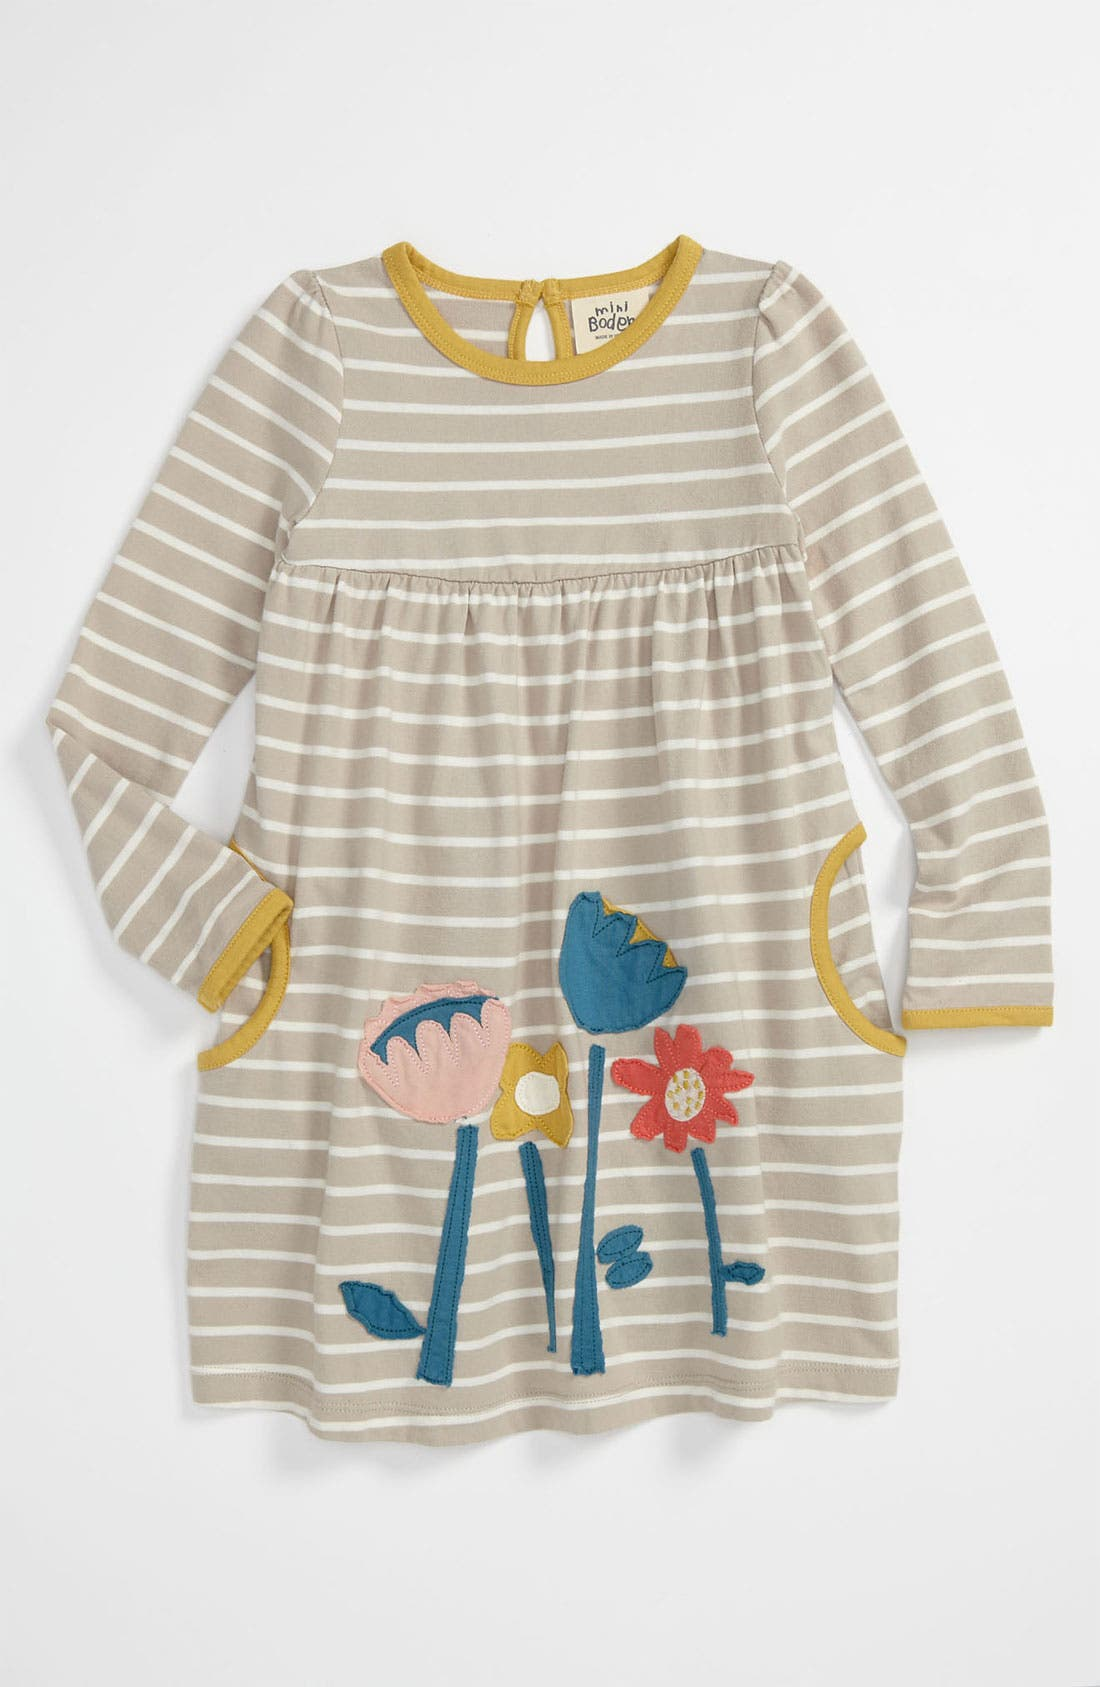 Alternate Image 1 Selected - Mini Boden 'Fun Appliqué' Dress (Toddler)